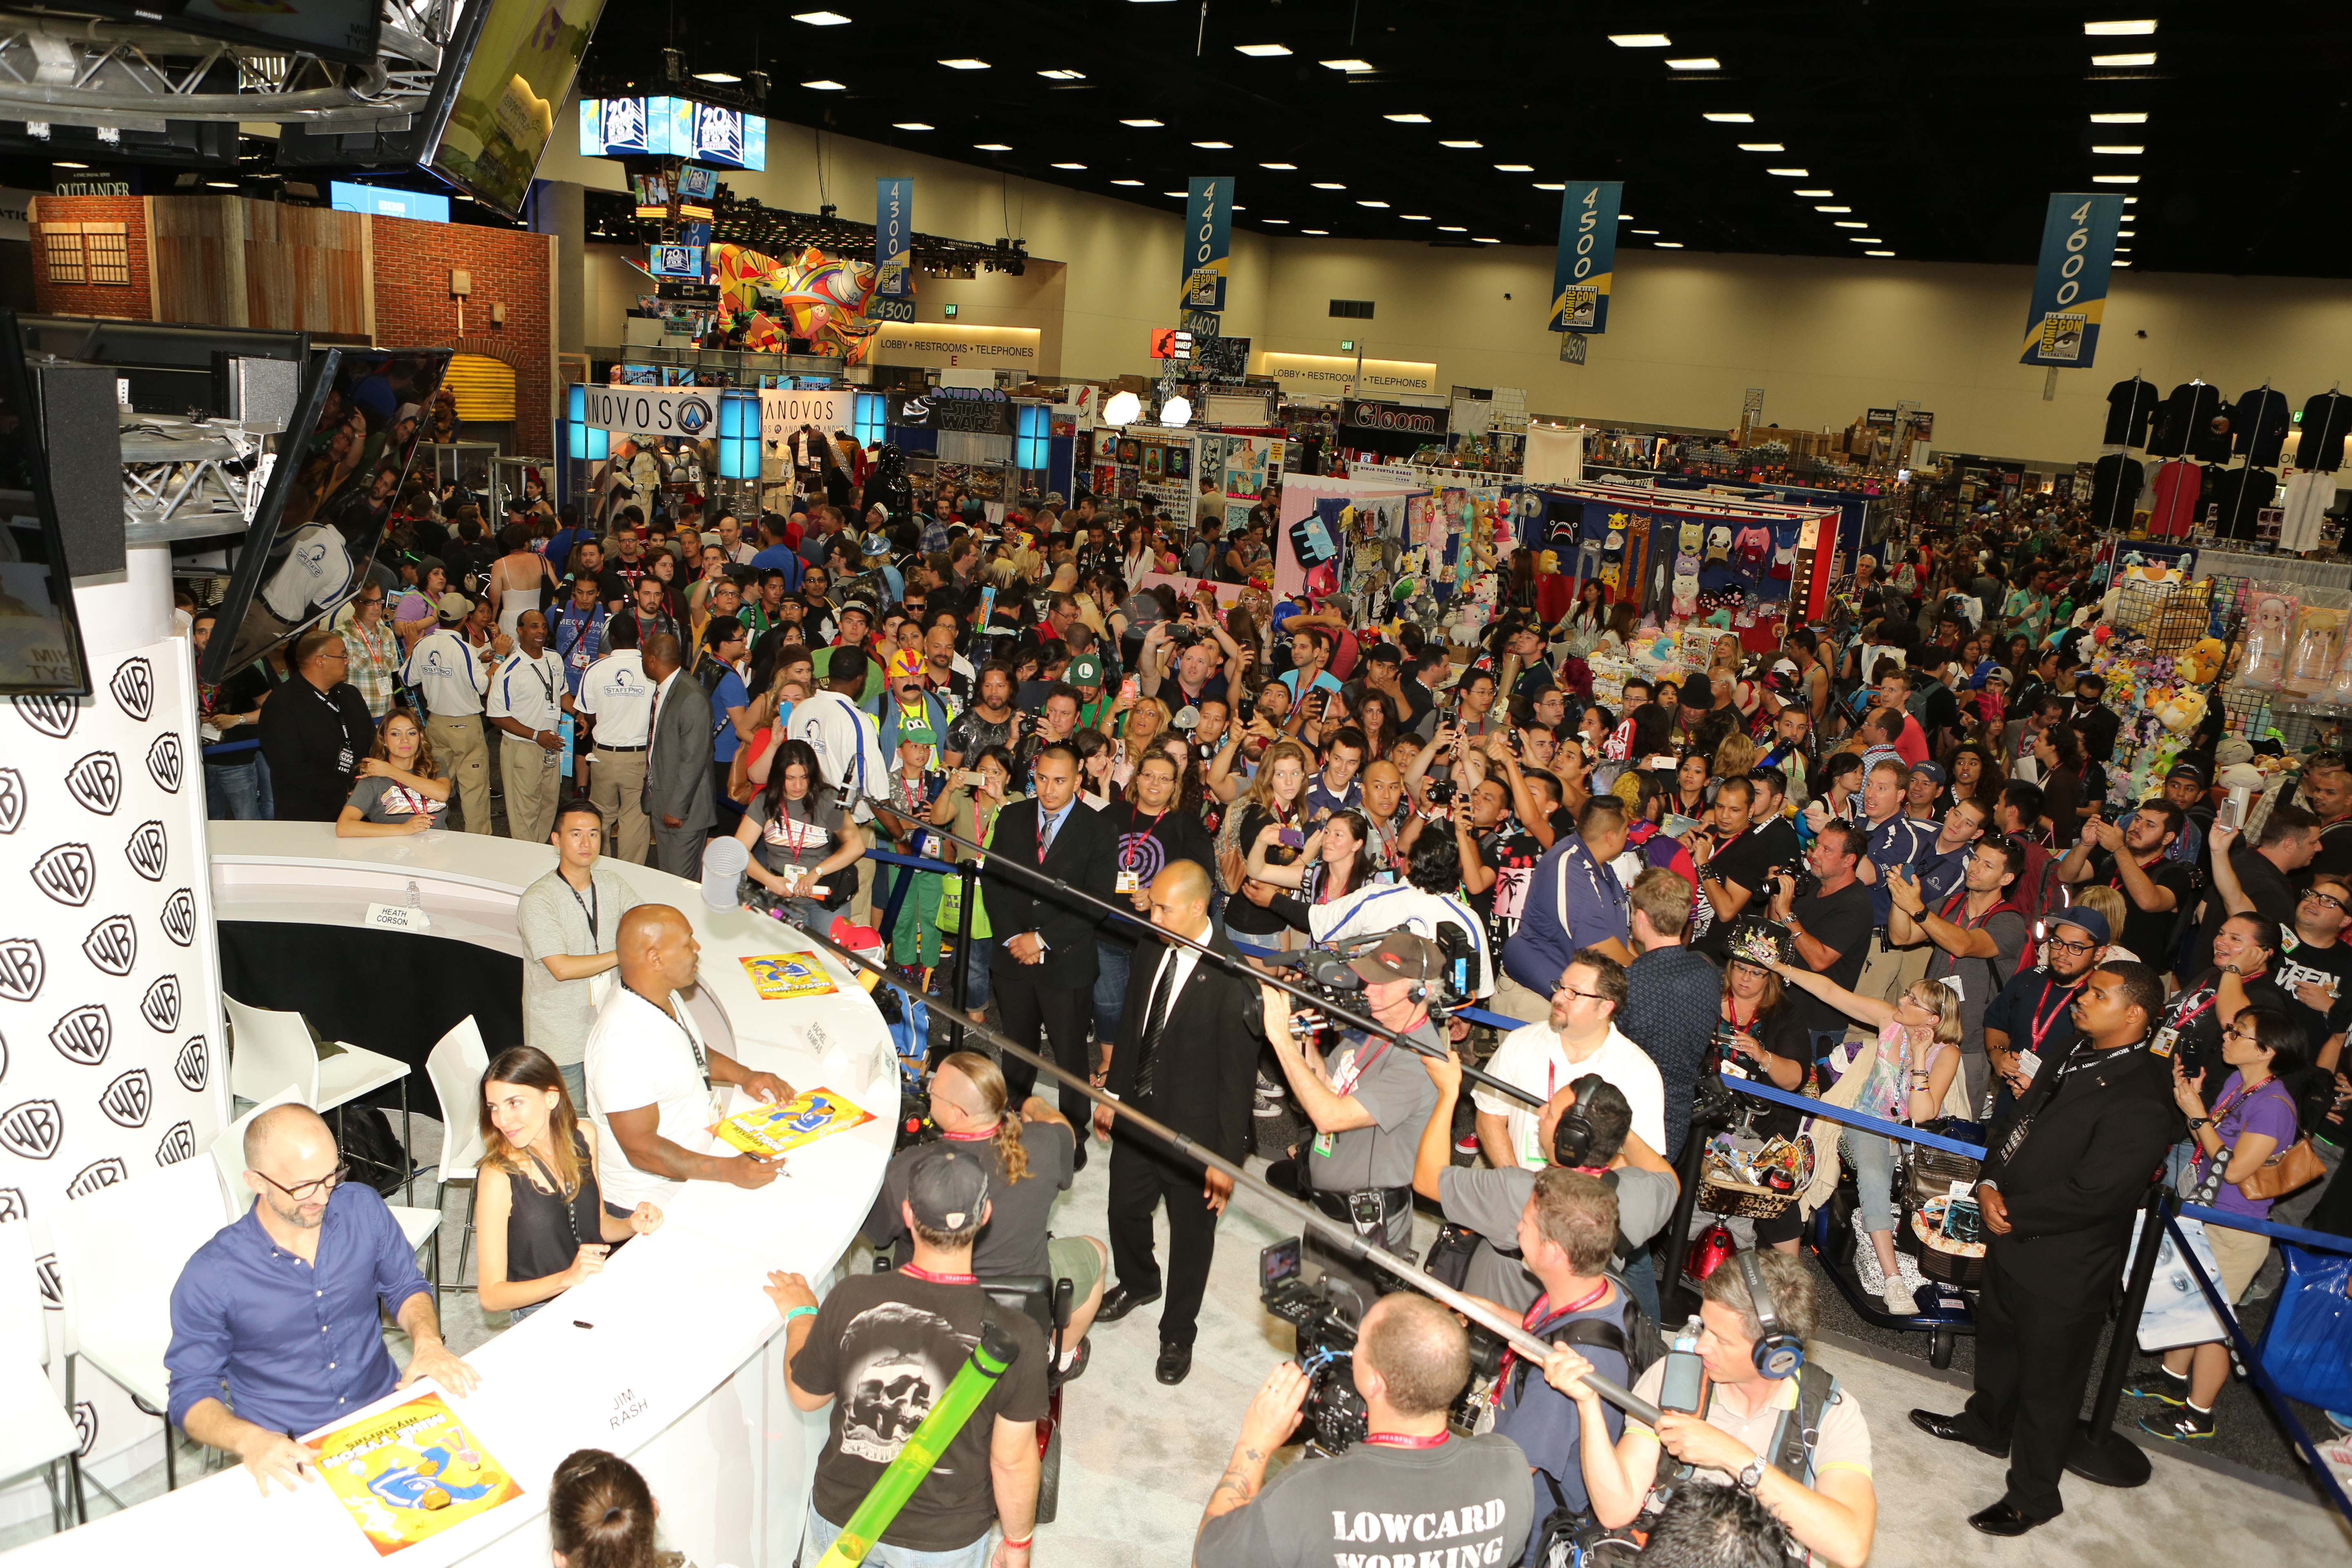 Mike Tyson Mysteries Crowd on hand to see him at San Diego Comic-Con.